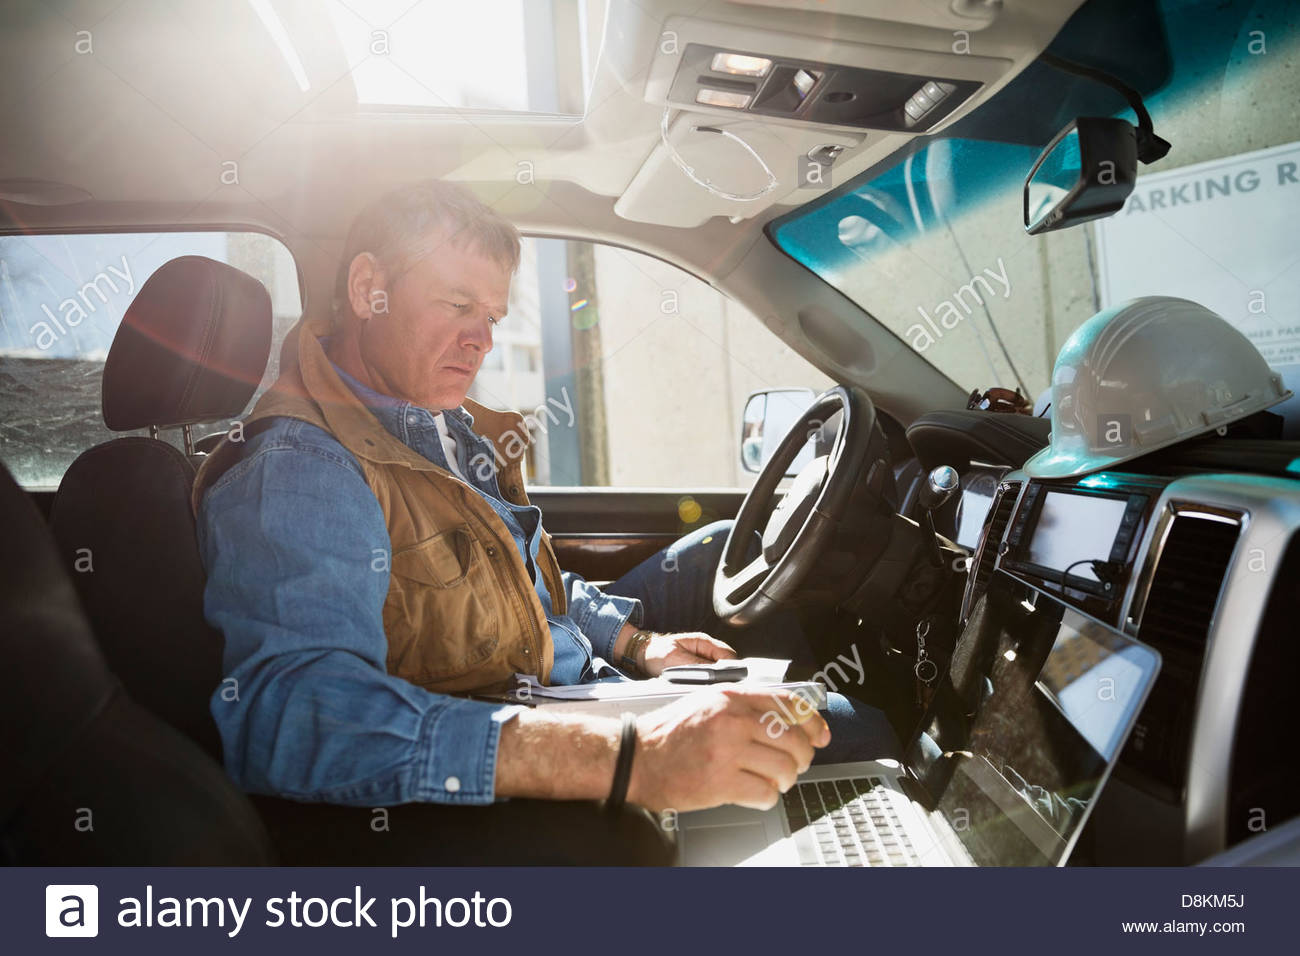 Foreman using laptop in truck - Stock Image